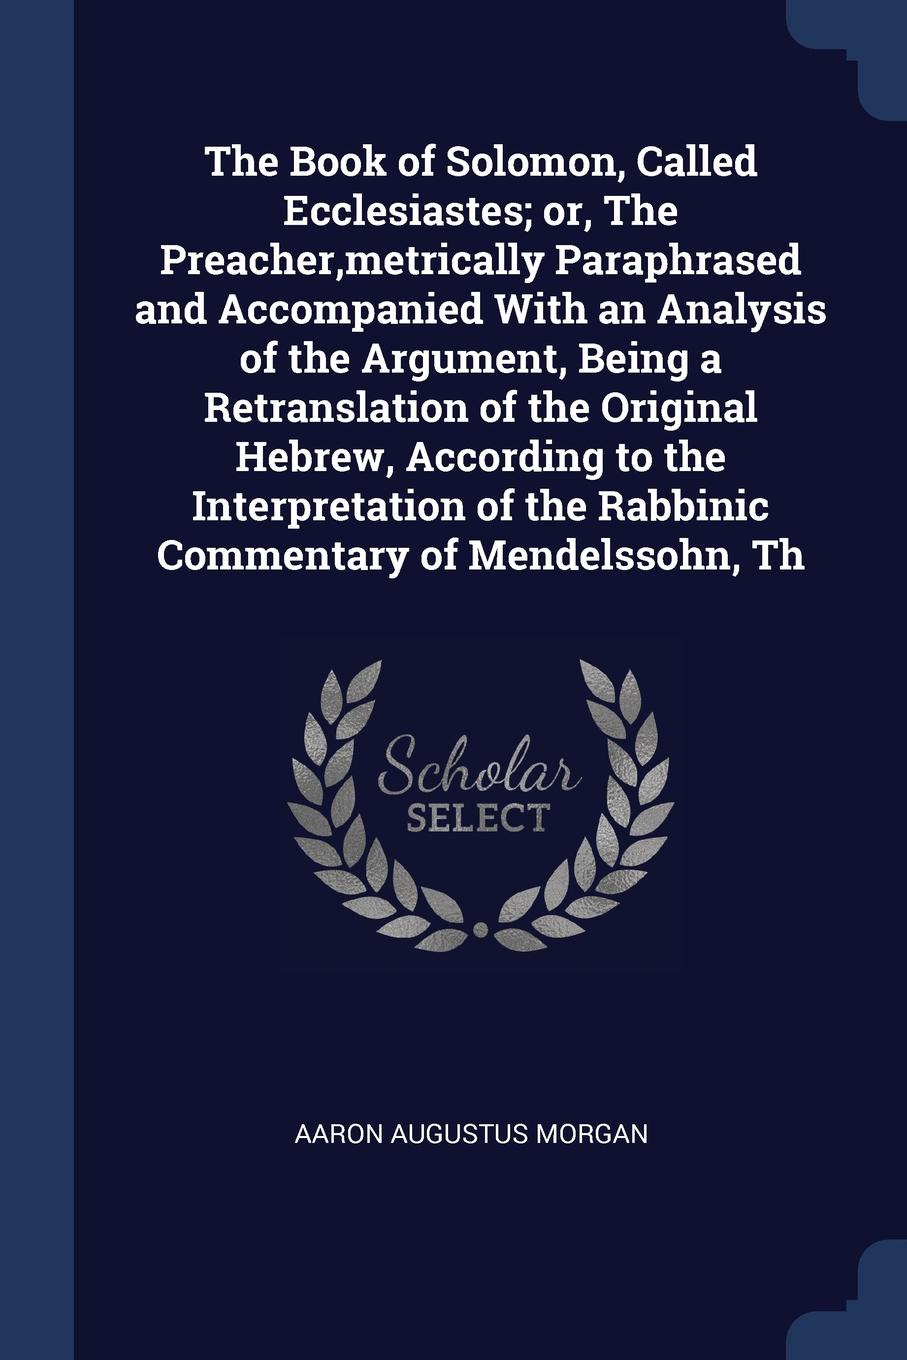 The Book of Solomon, Called Ecclesiastes; or, The Preacher,metrically Paraphrased and Accompanied With an Analysis of the Argument, Being a Retranslation of the Original Hebrew, According to the Interpretation of the Rabbinic Commentary of Mendels...